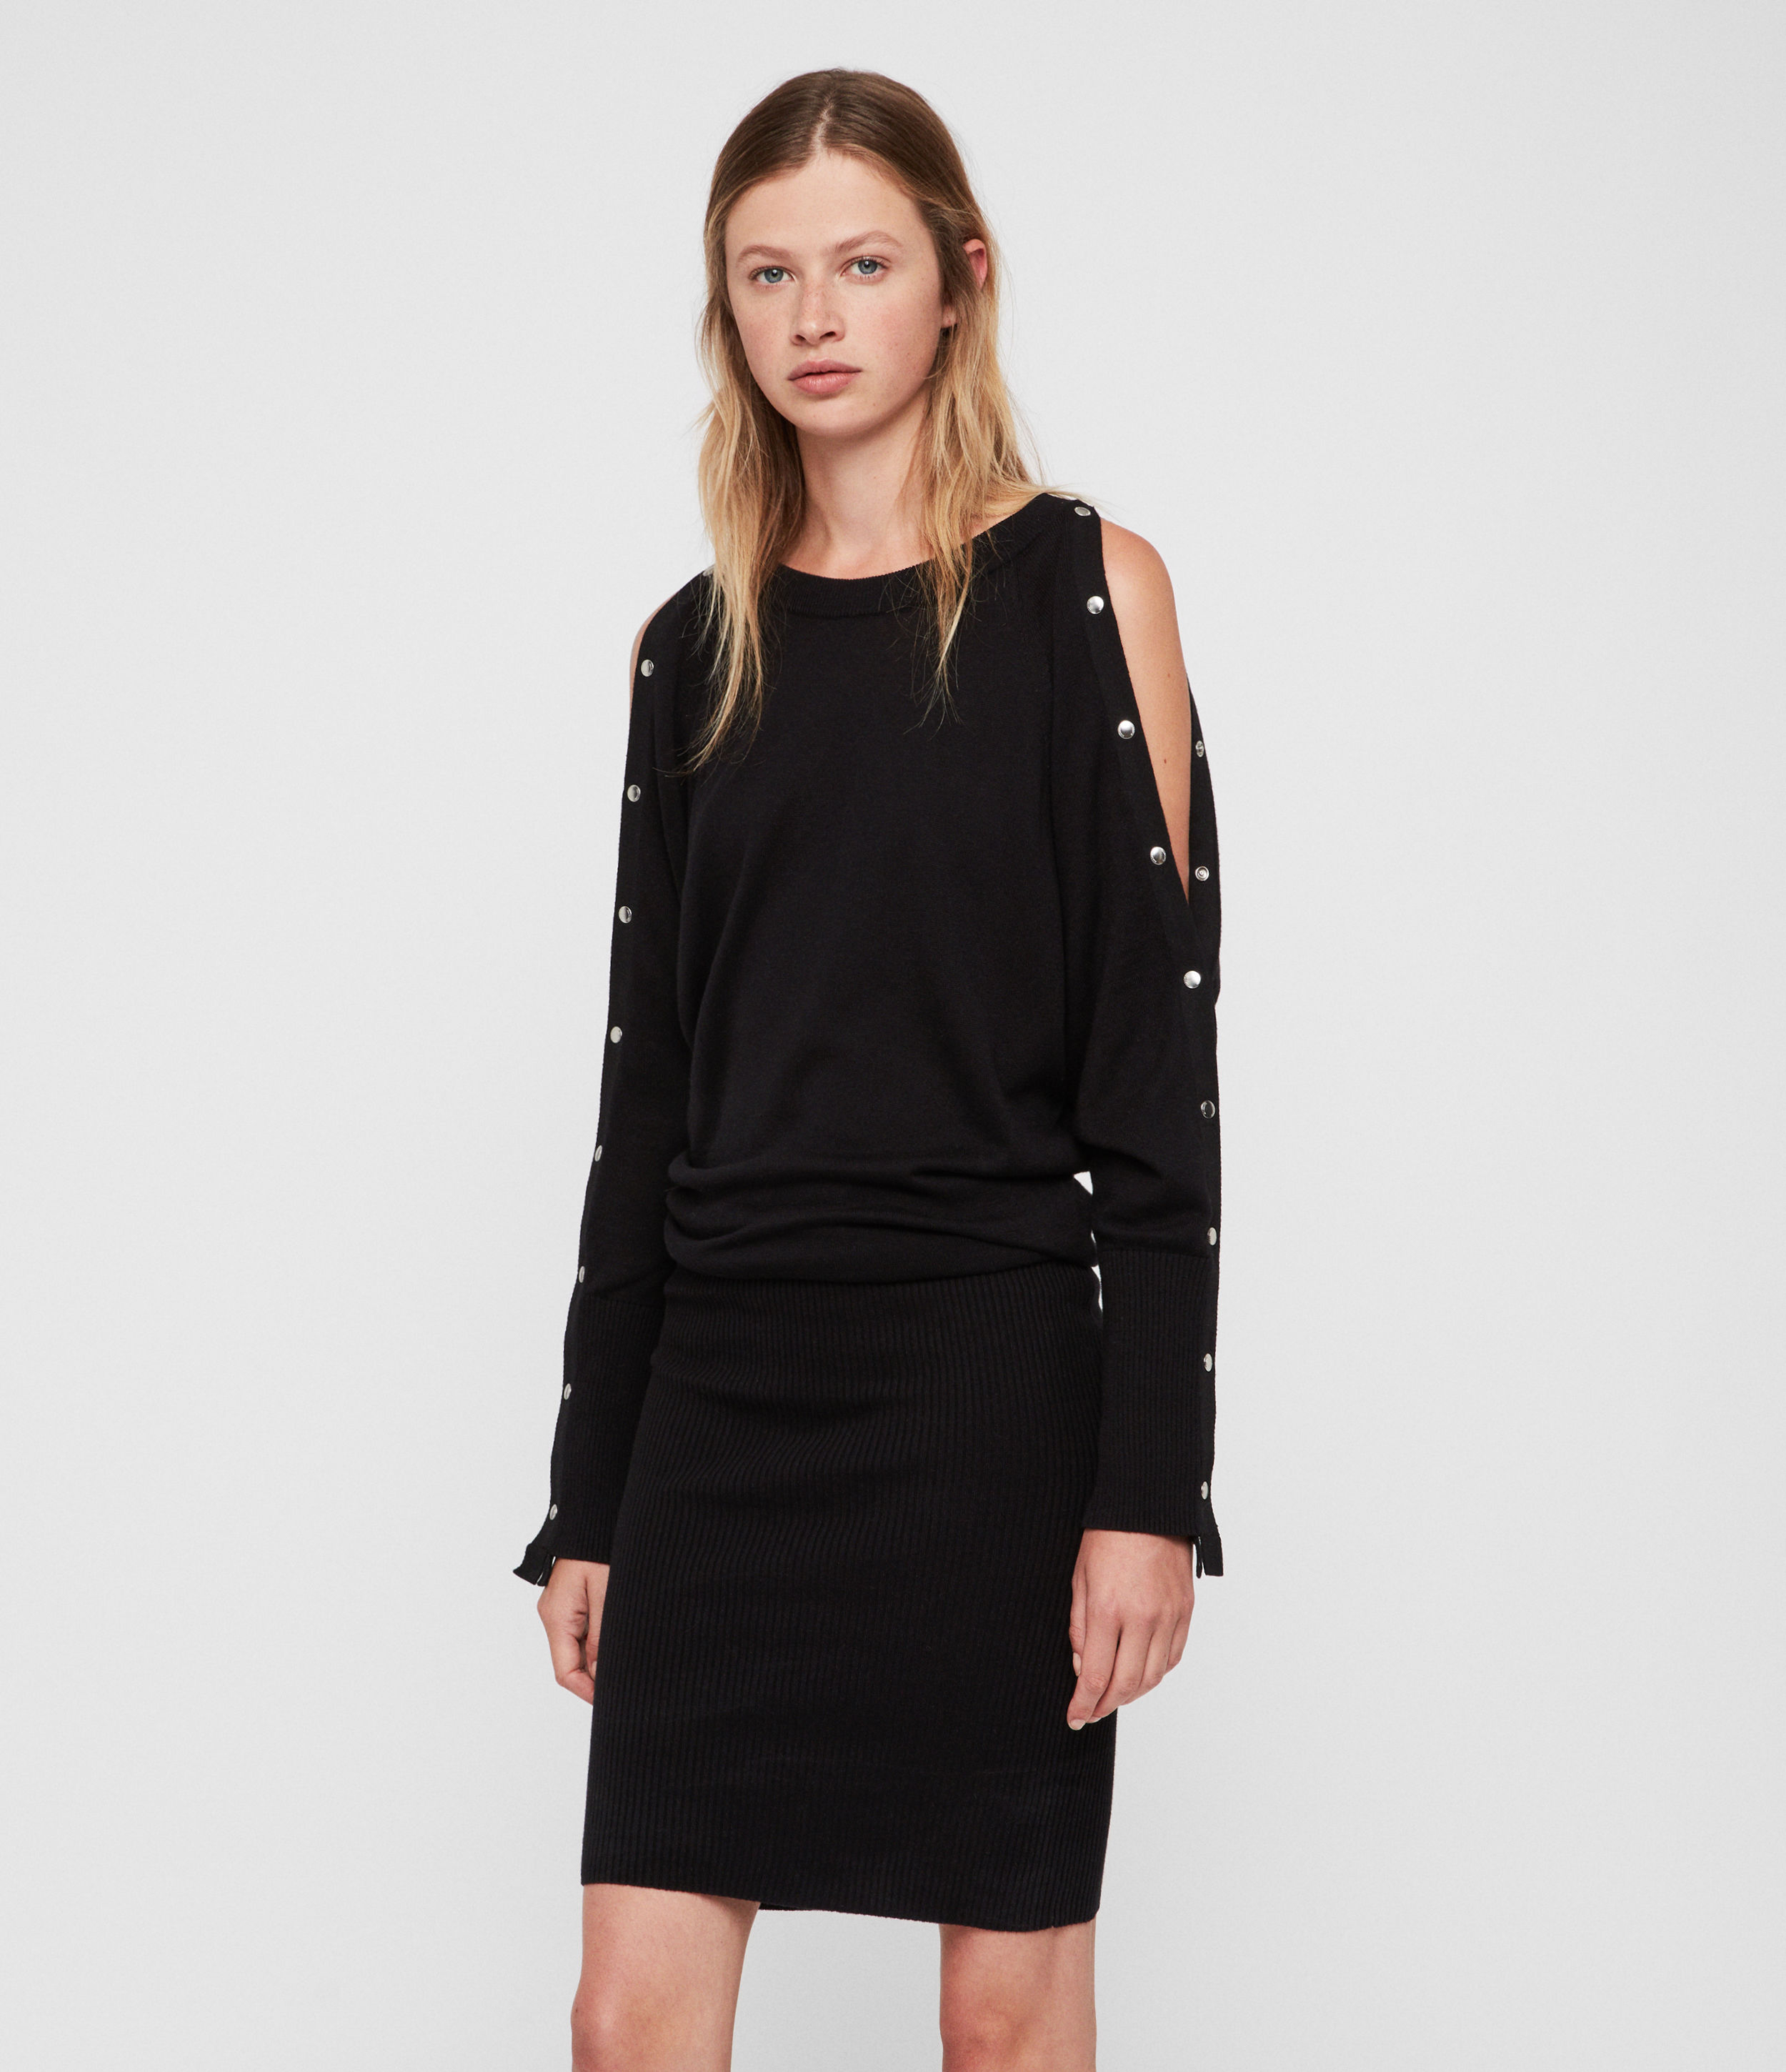 AllSaints Suzie Dress